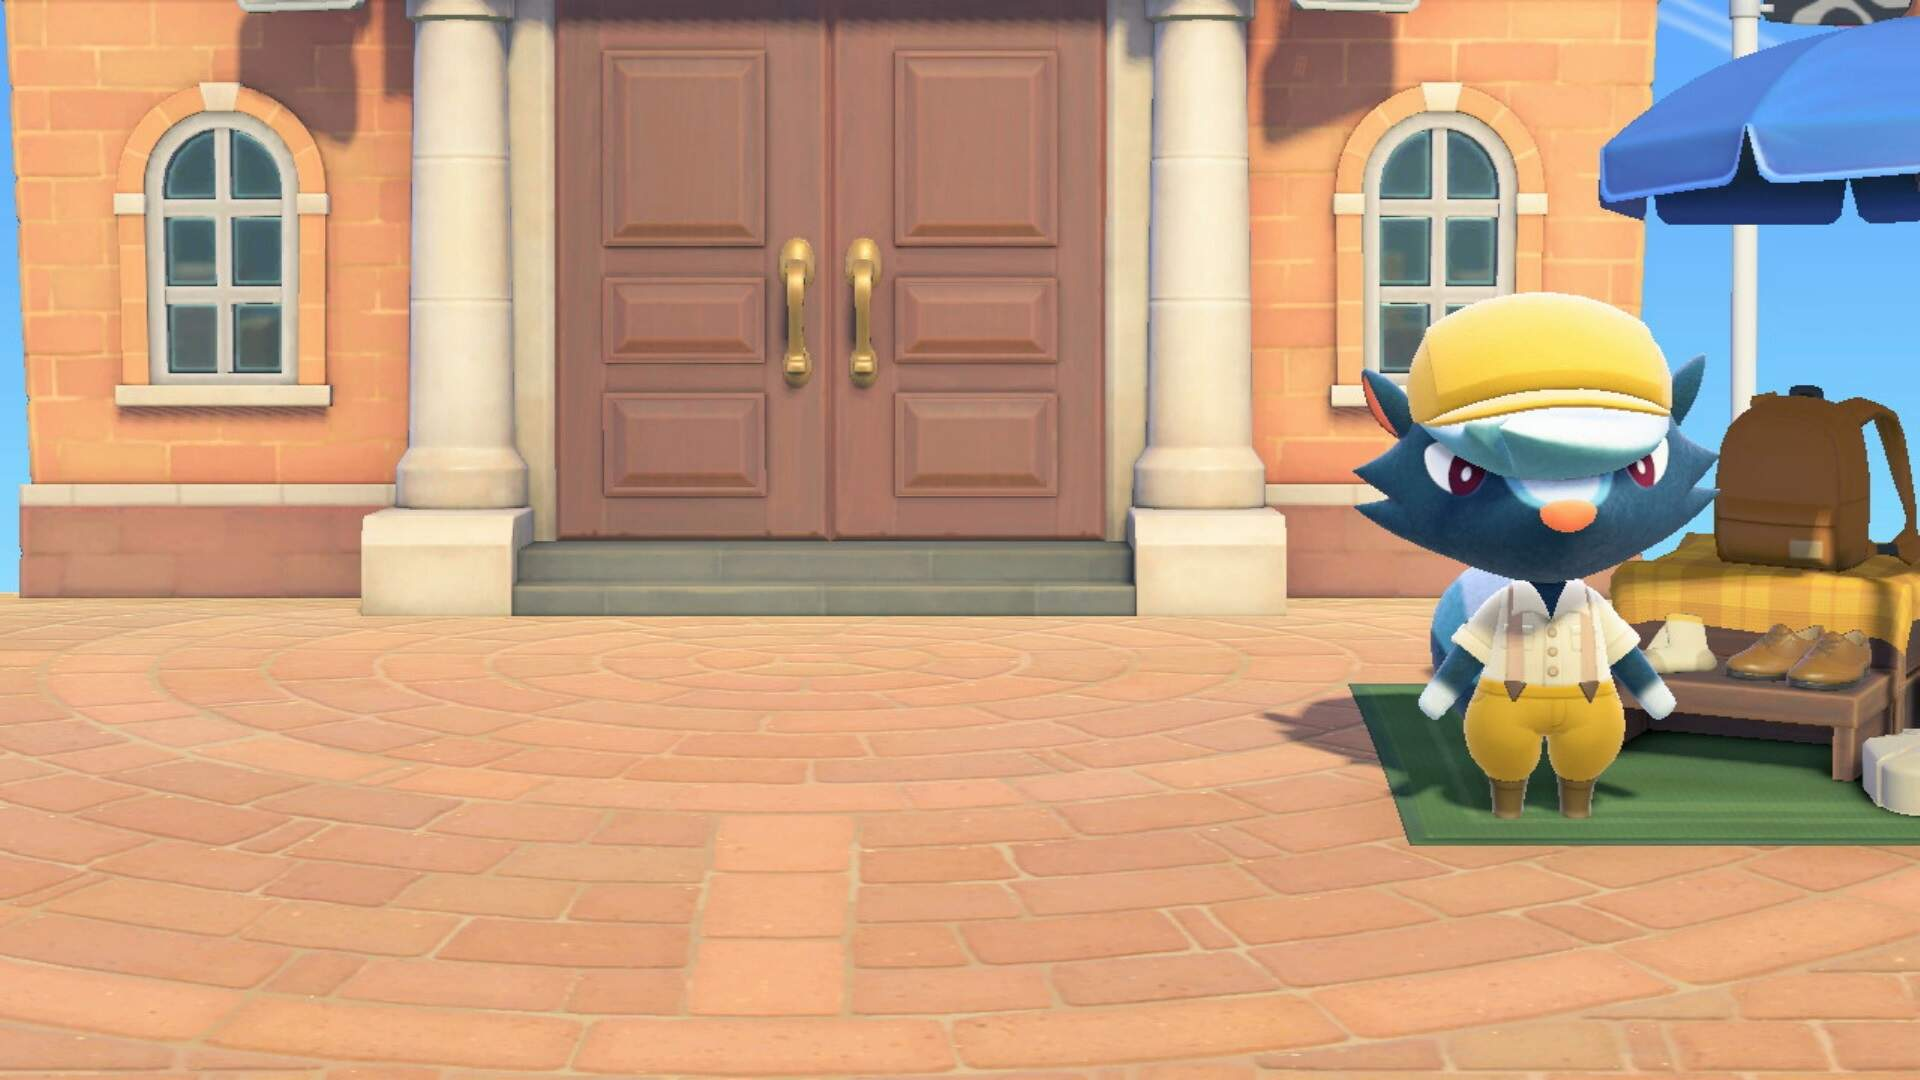 Animal Crossing New Horizons: When Does Kicks Come to Your Island?